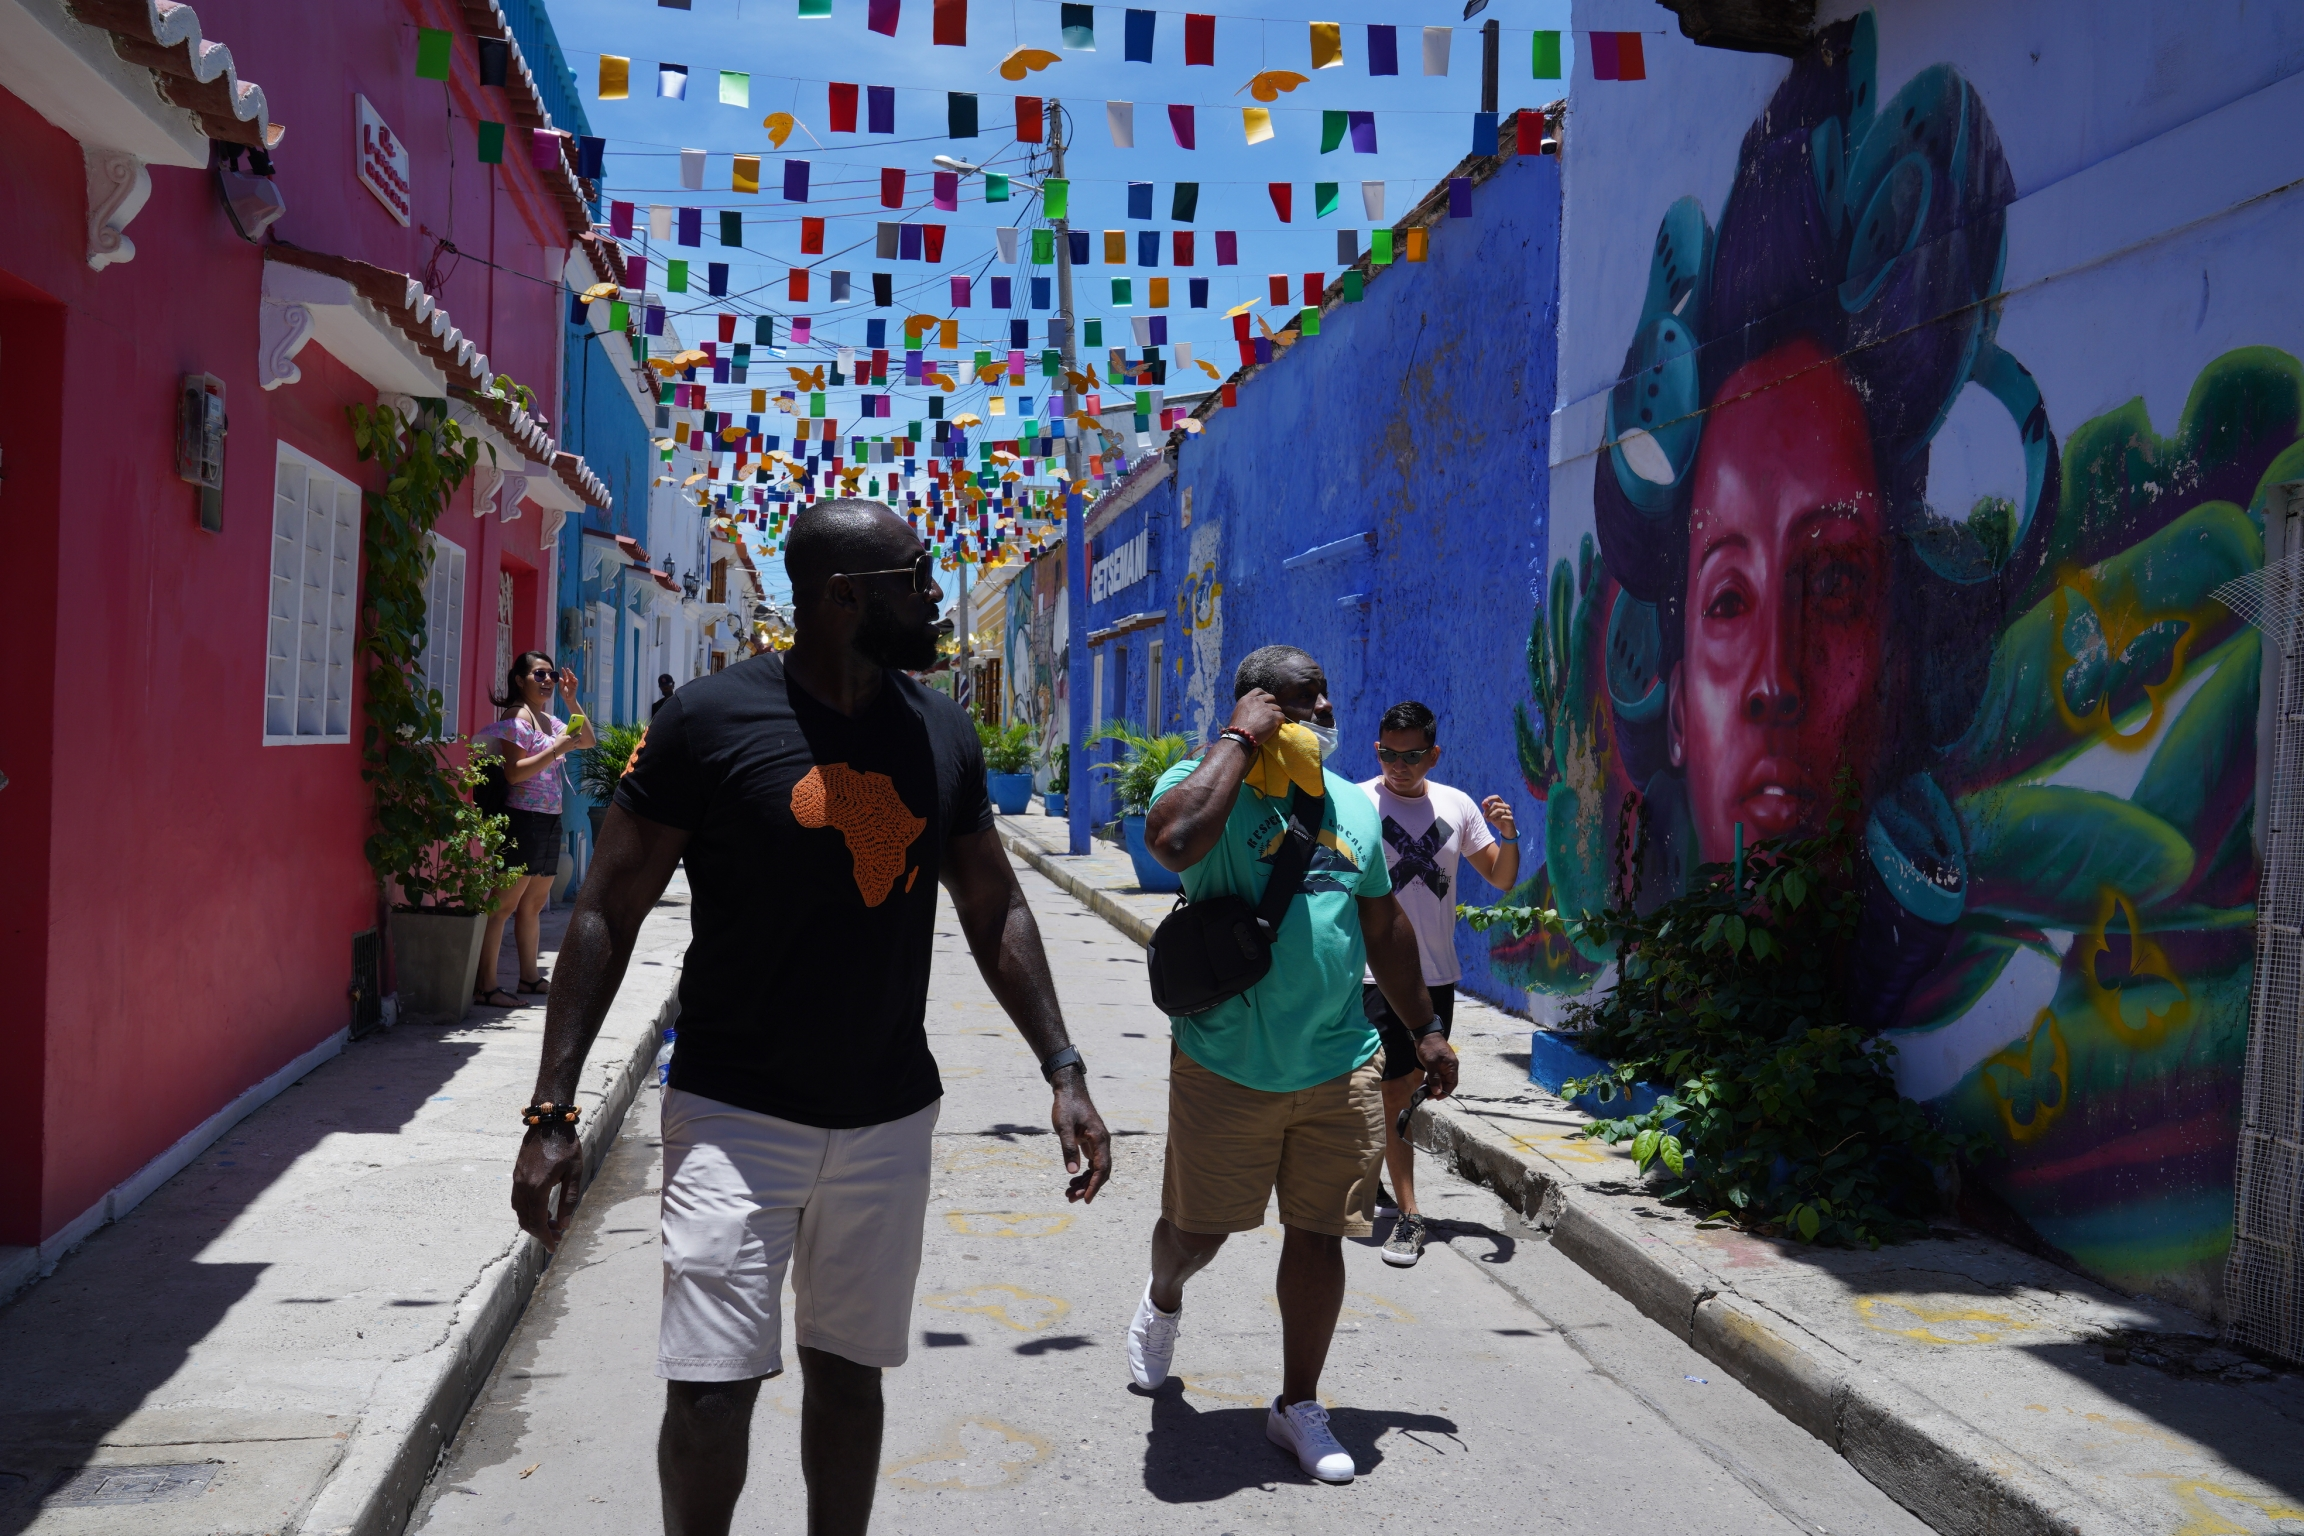 Tourists check out Getsemani. The neighborhood had a reputation from crime until recently, but investors have bought homes there and turned them into restaurants and boutique hotels